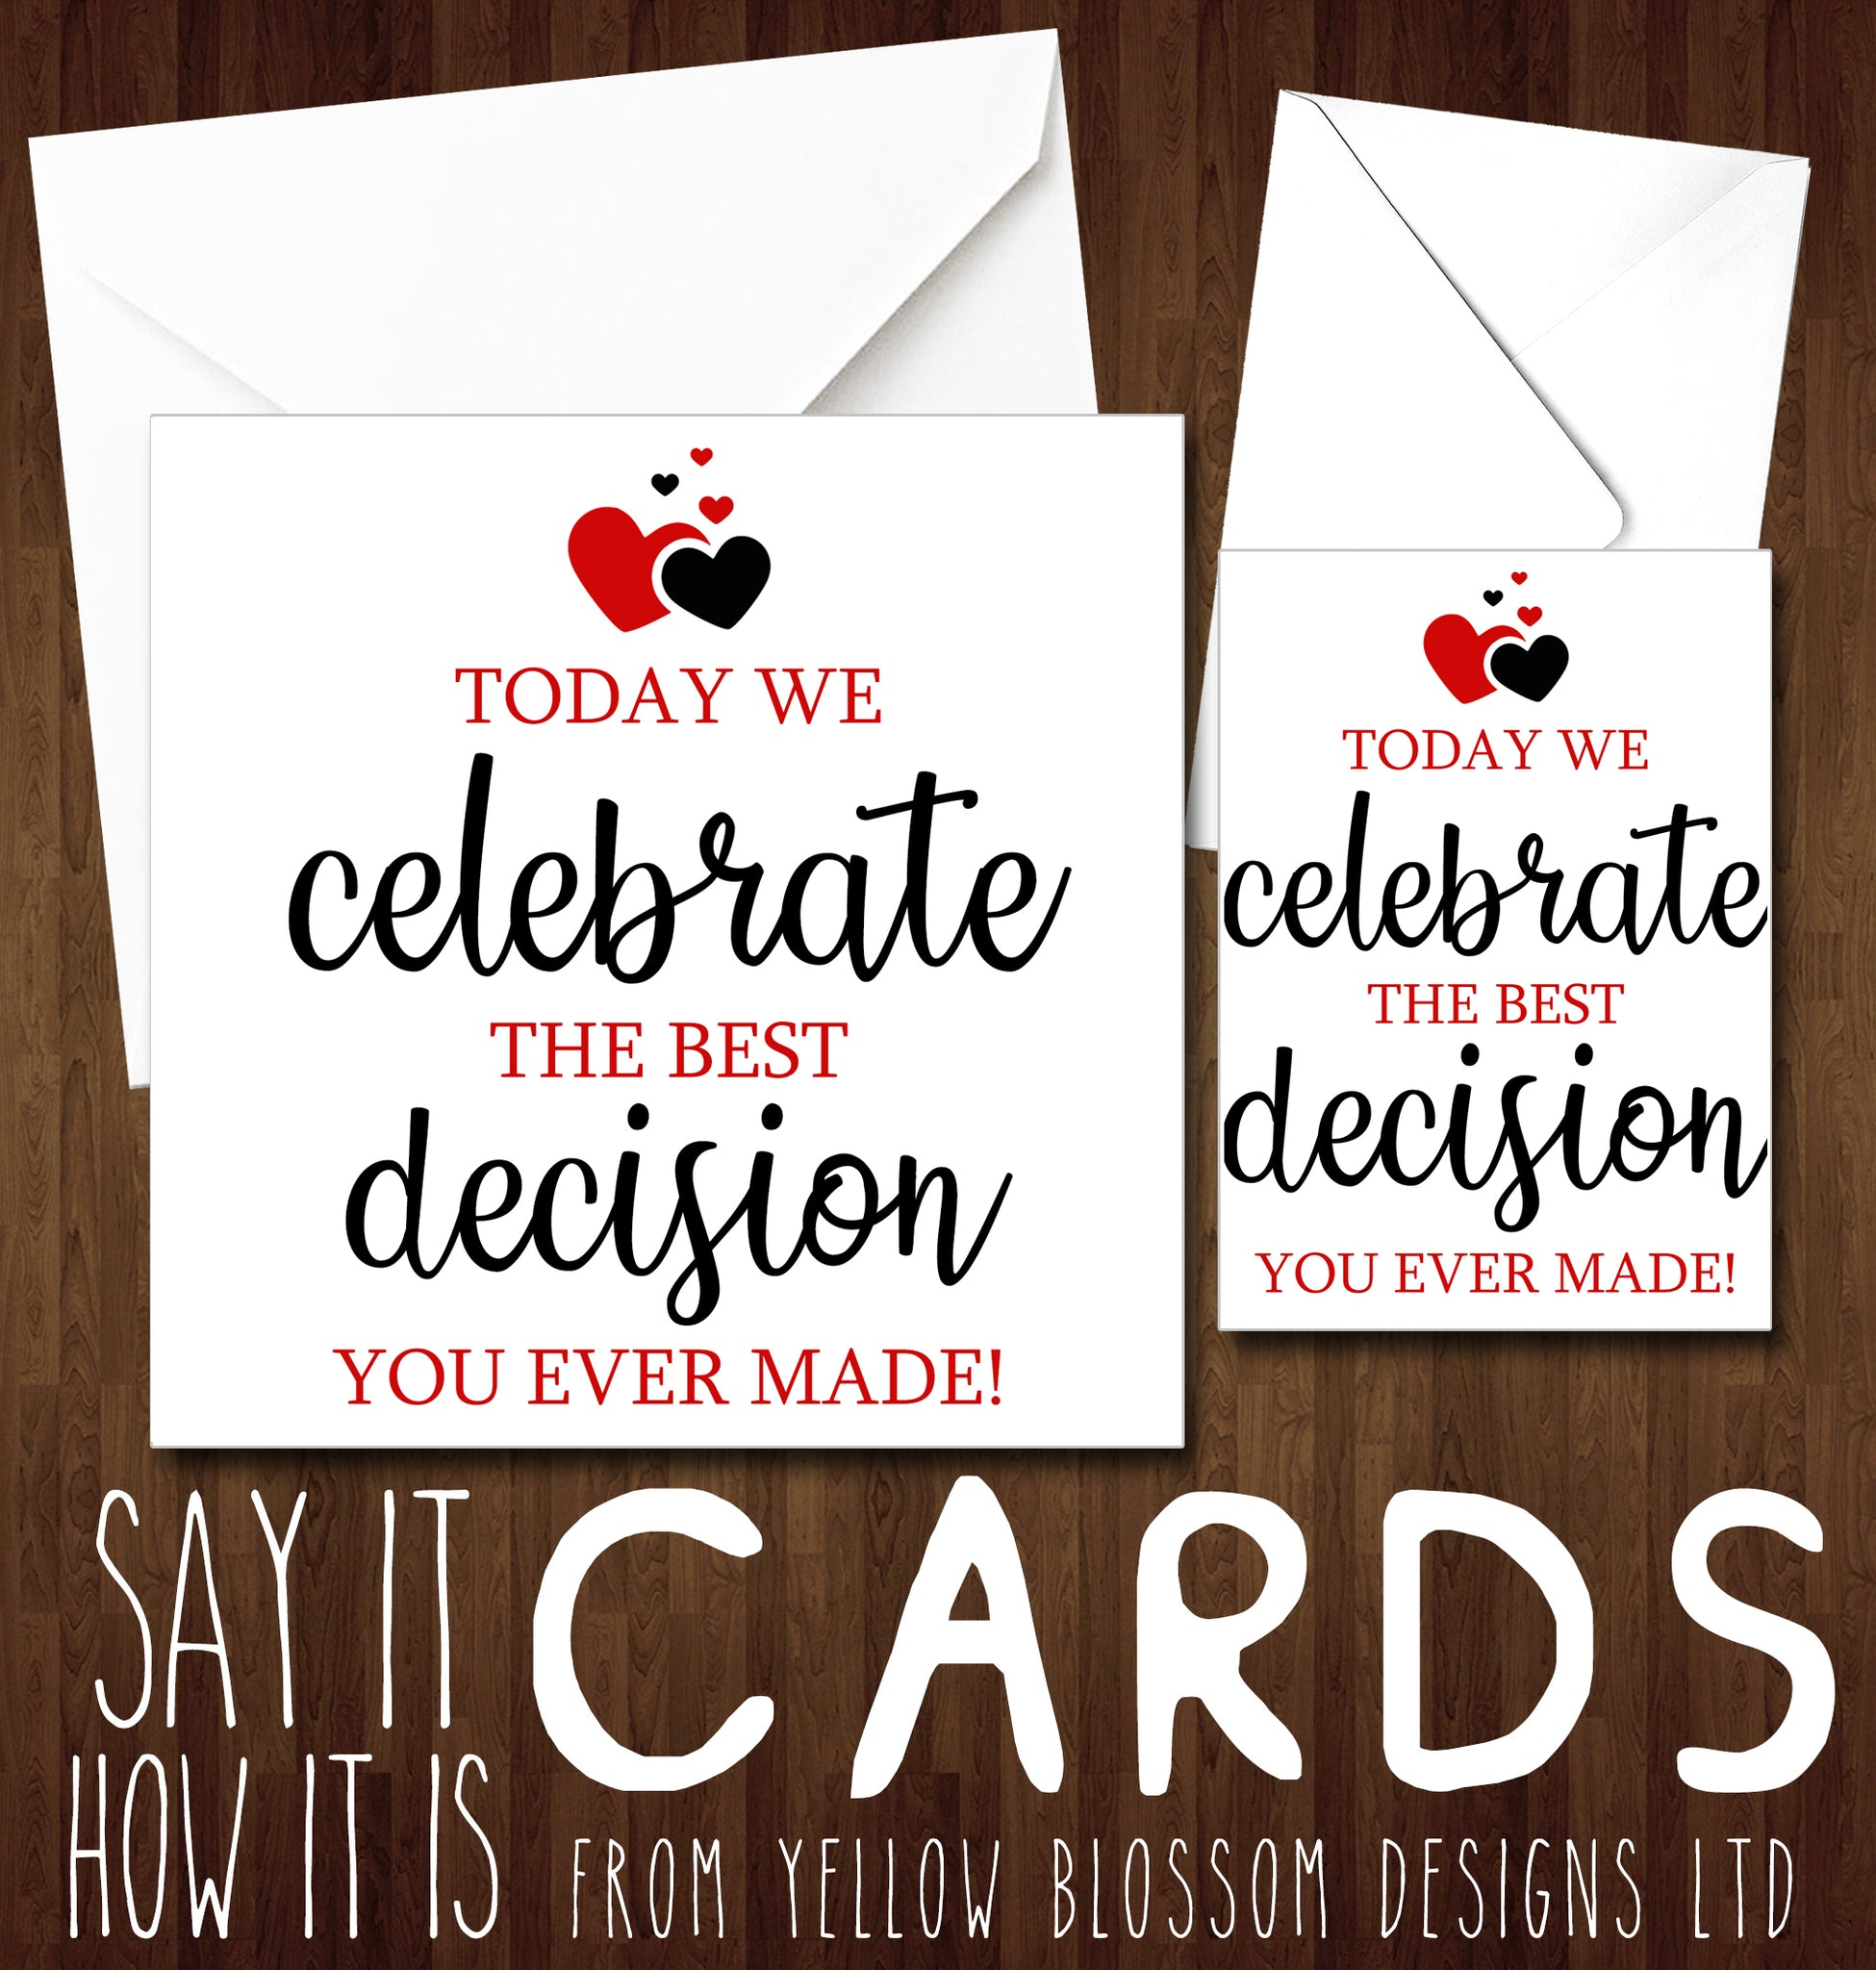 BIRTHDAY ANNIVERSARY VALENTINES CHRISTMAS CARDS ADULT HUMOUR Funny Banter MS